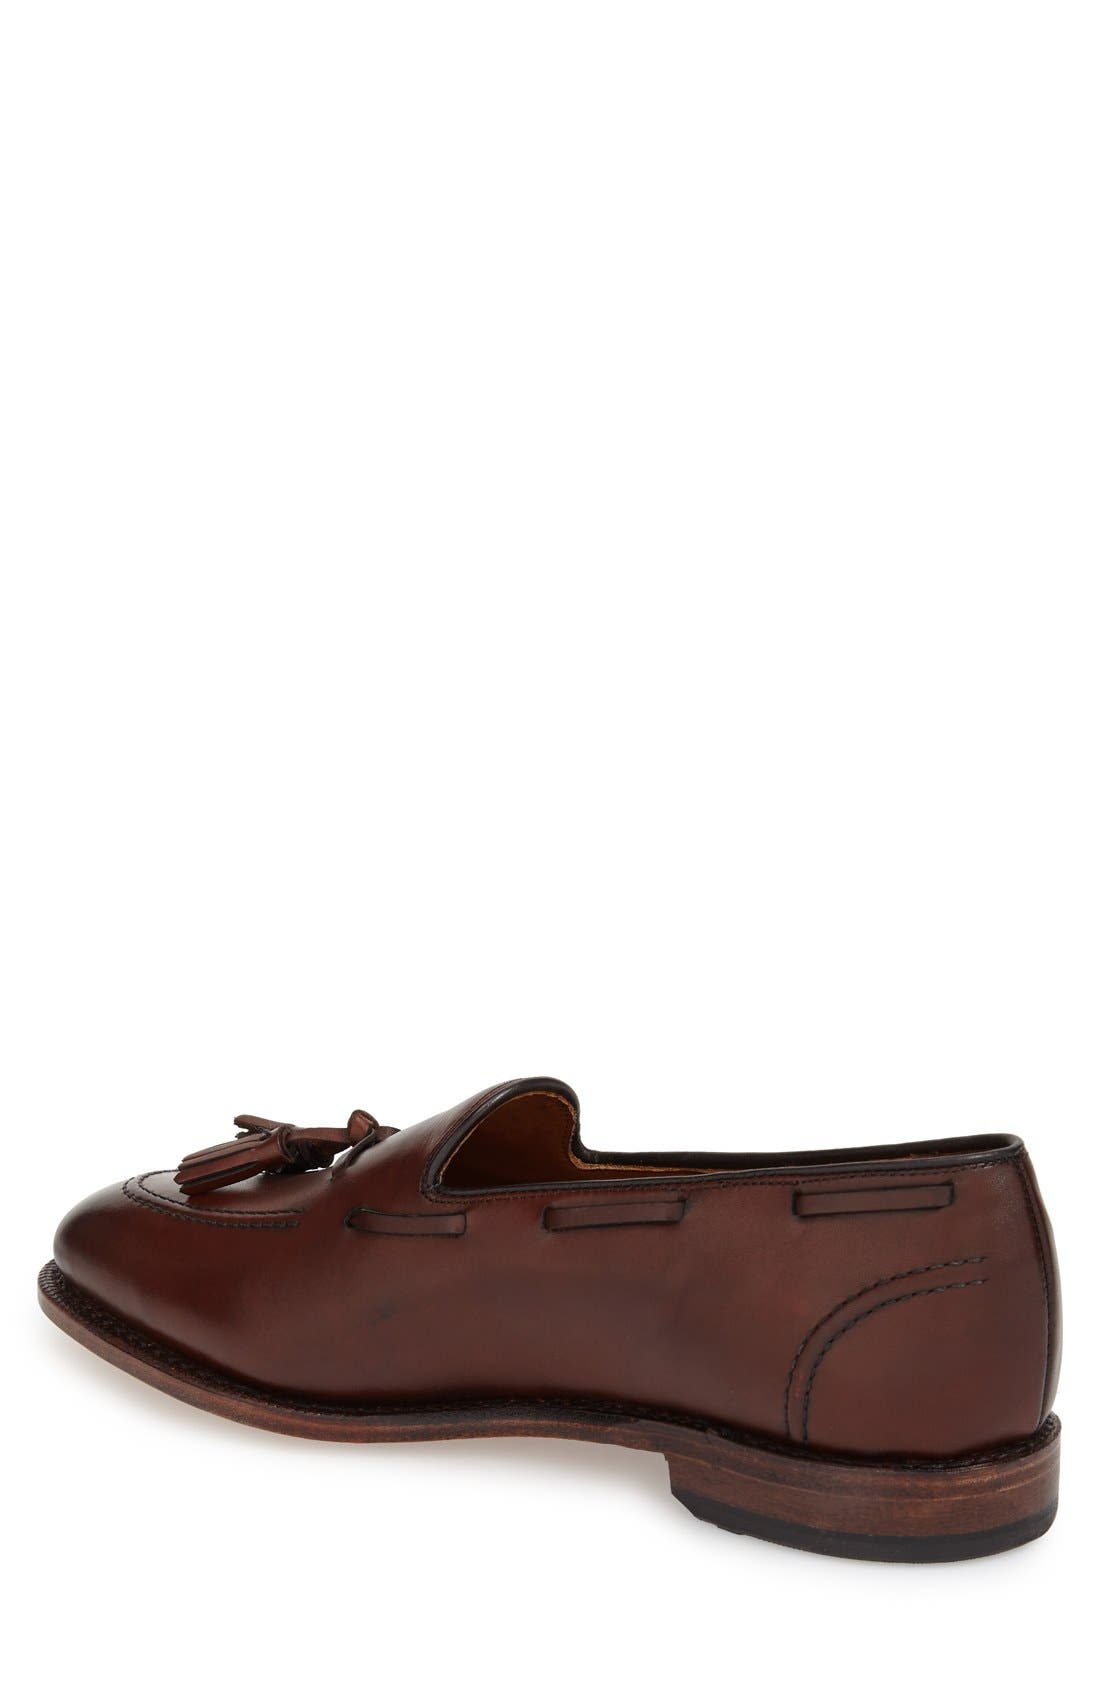 'Acheson' Tassel Loafer,                             Alternate thumbnail 2, color,                             Dark Chili Burnished